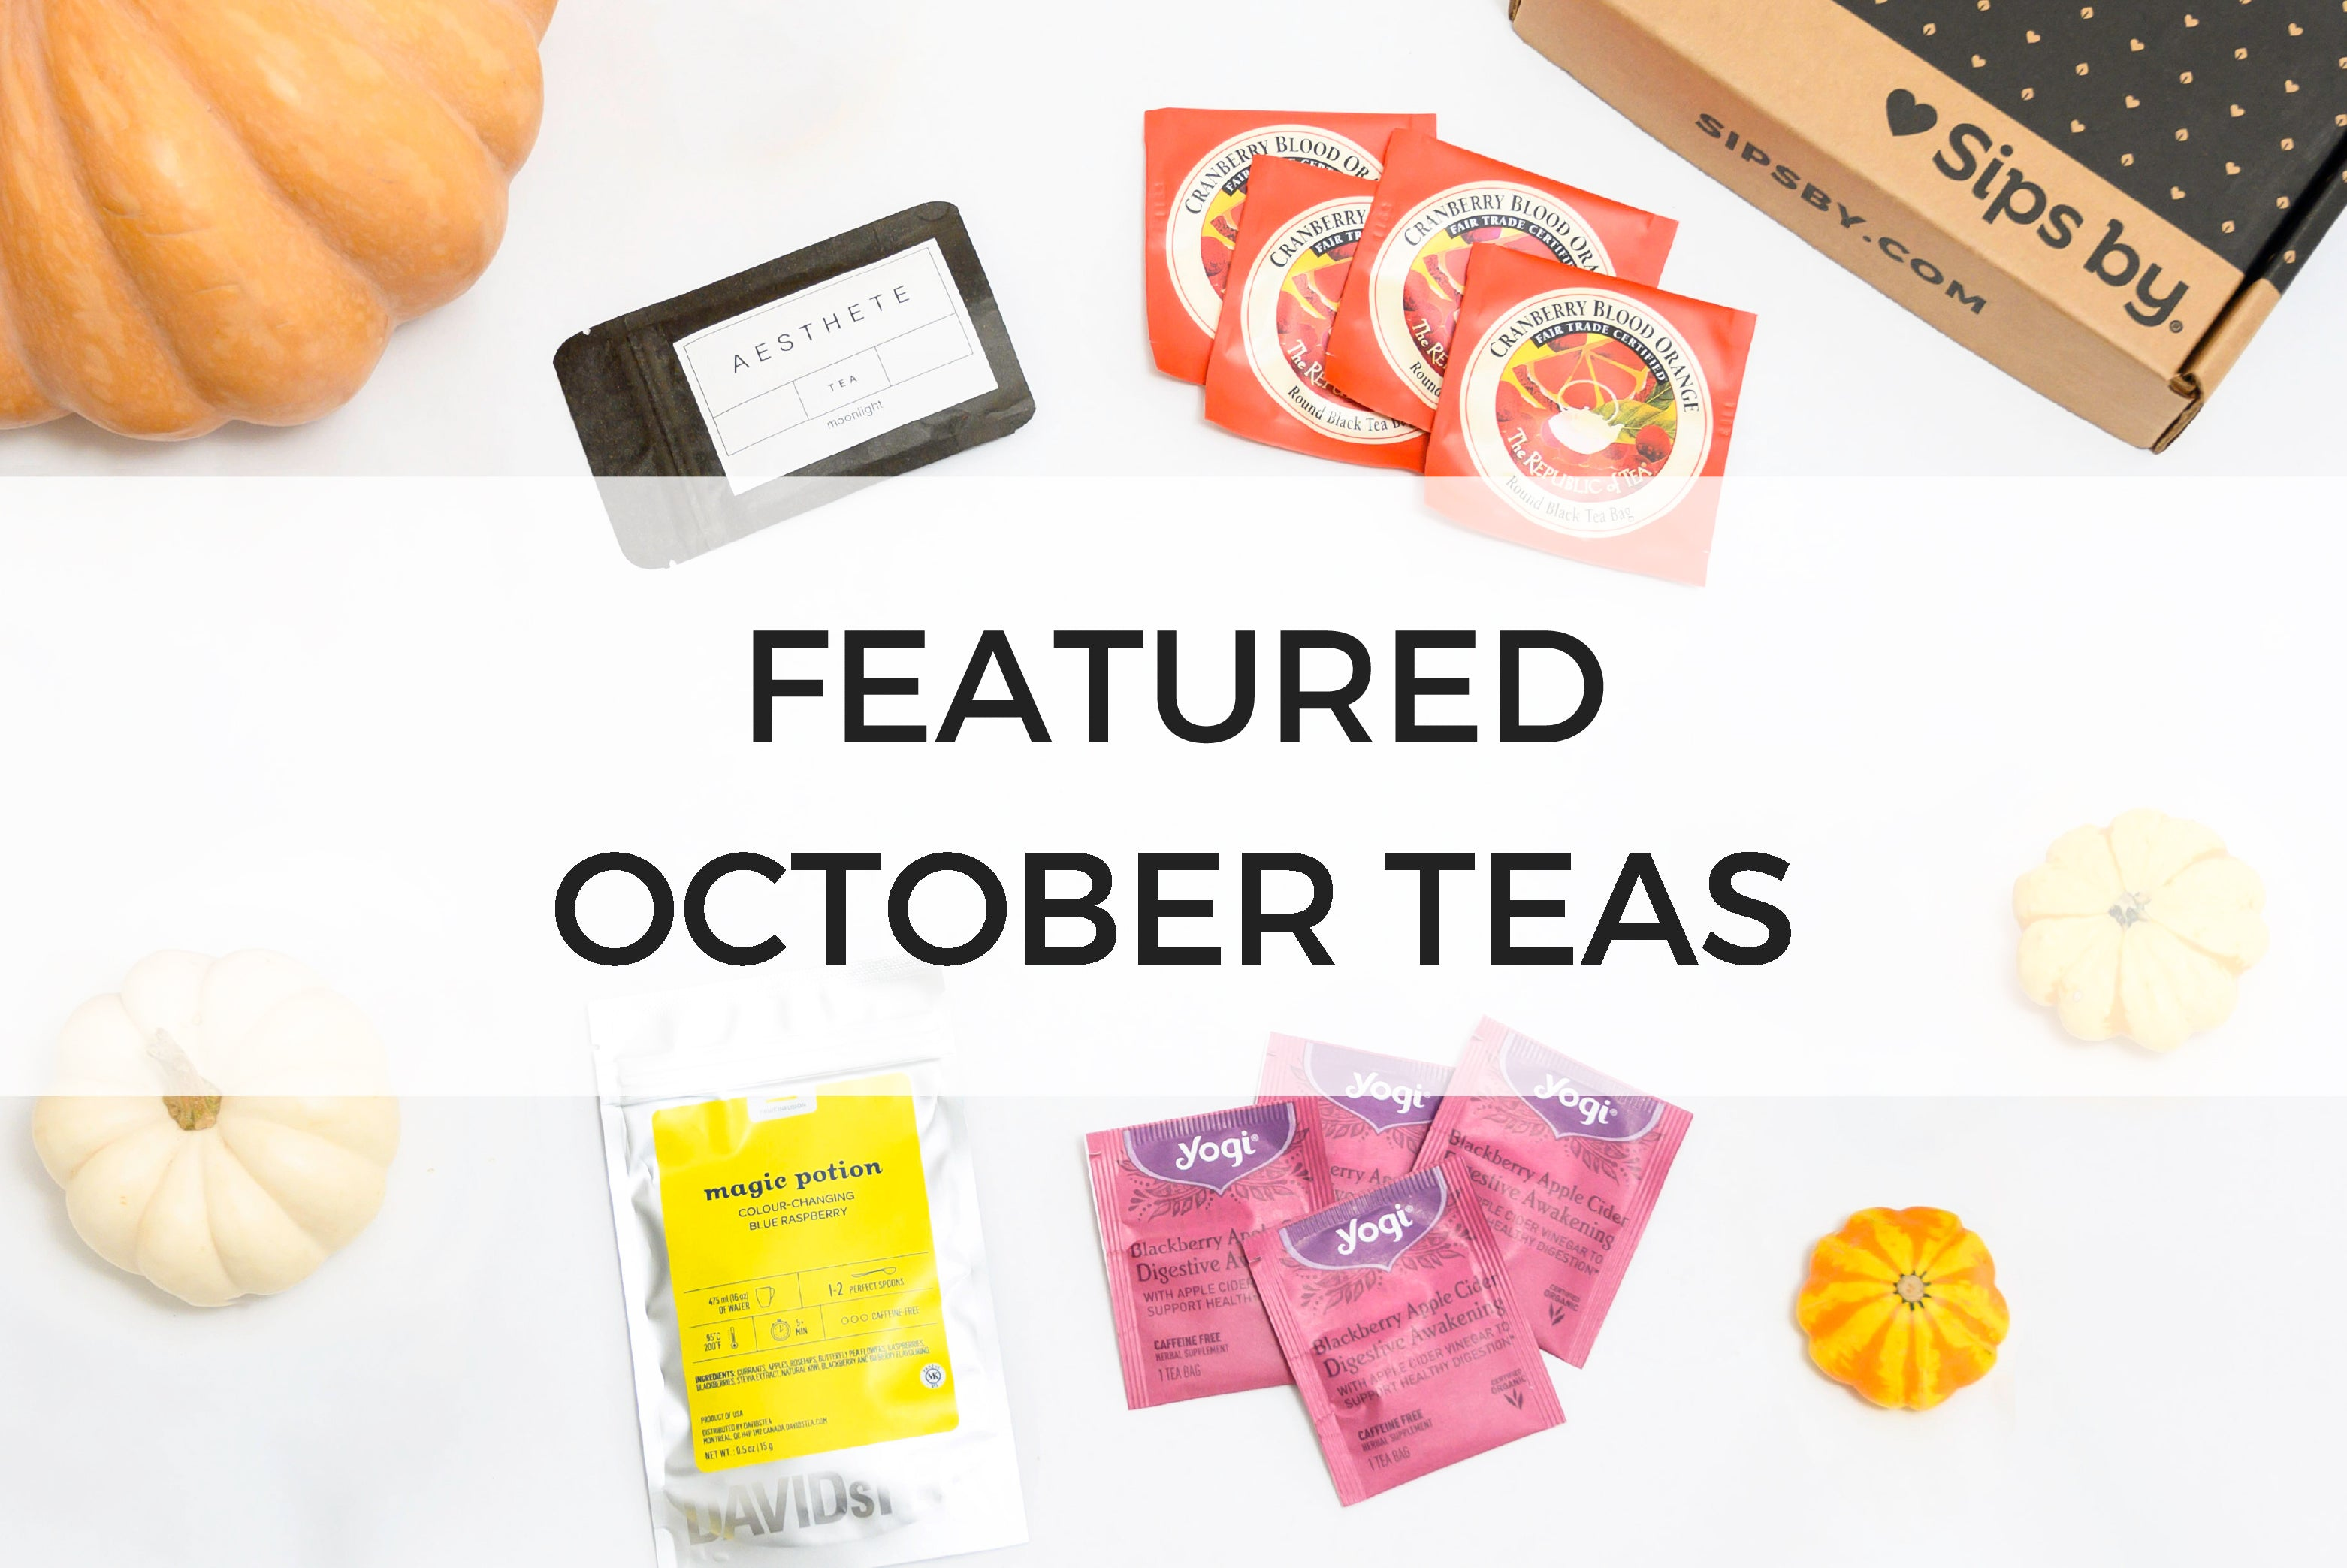 October Featured Teas